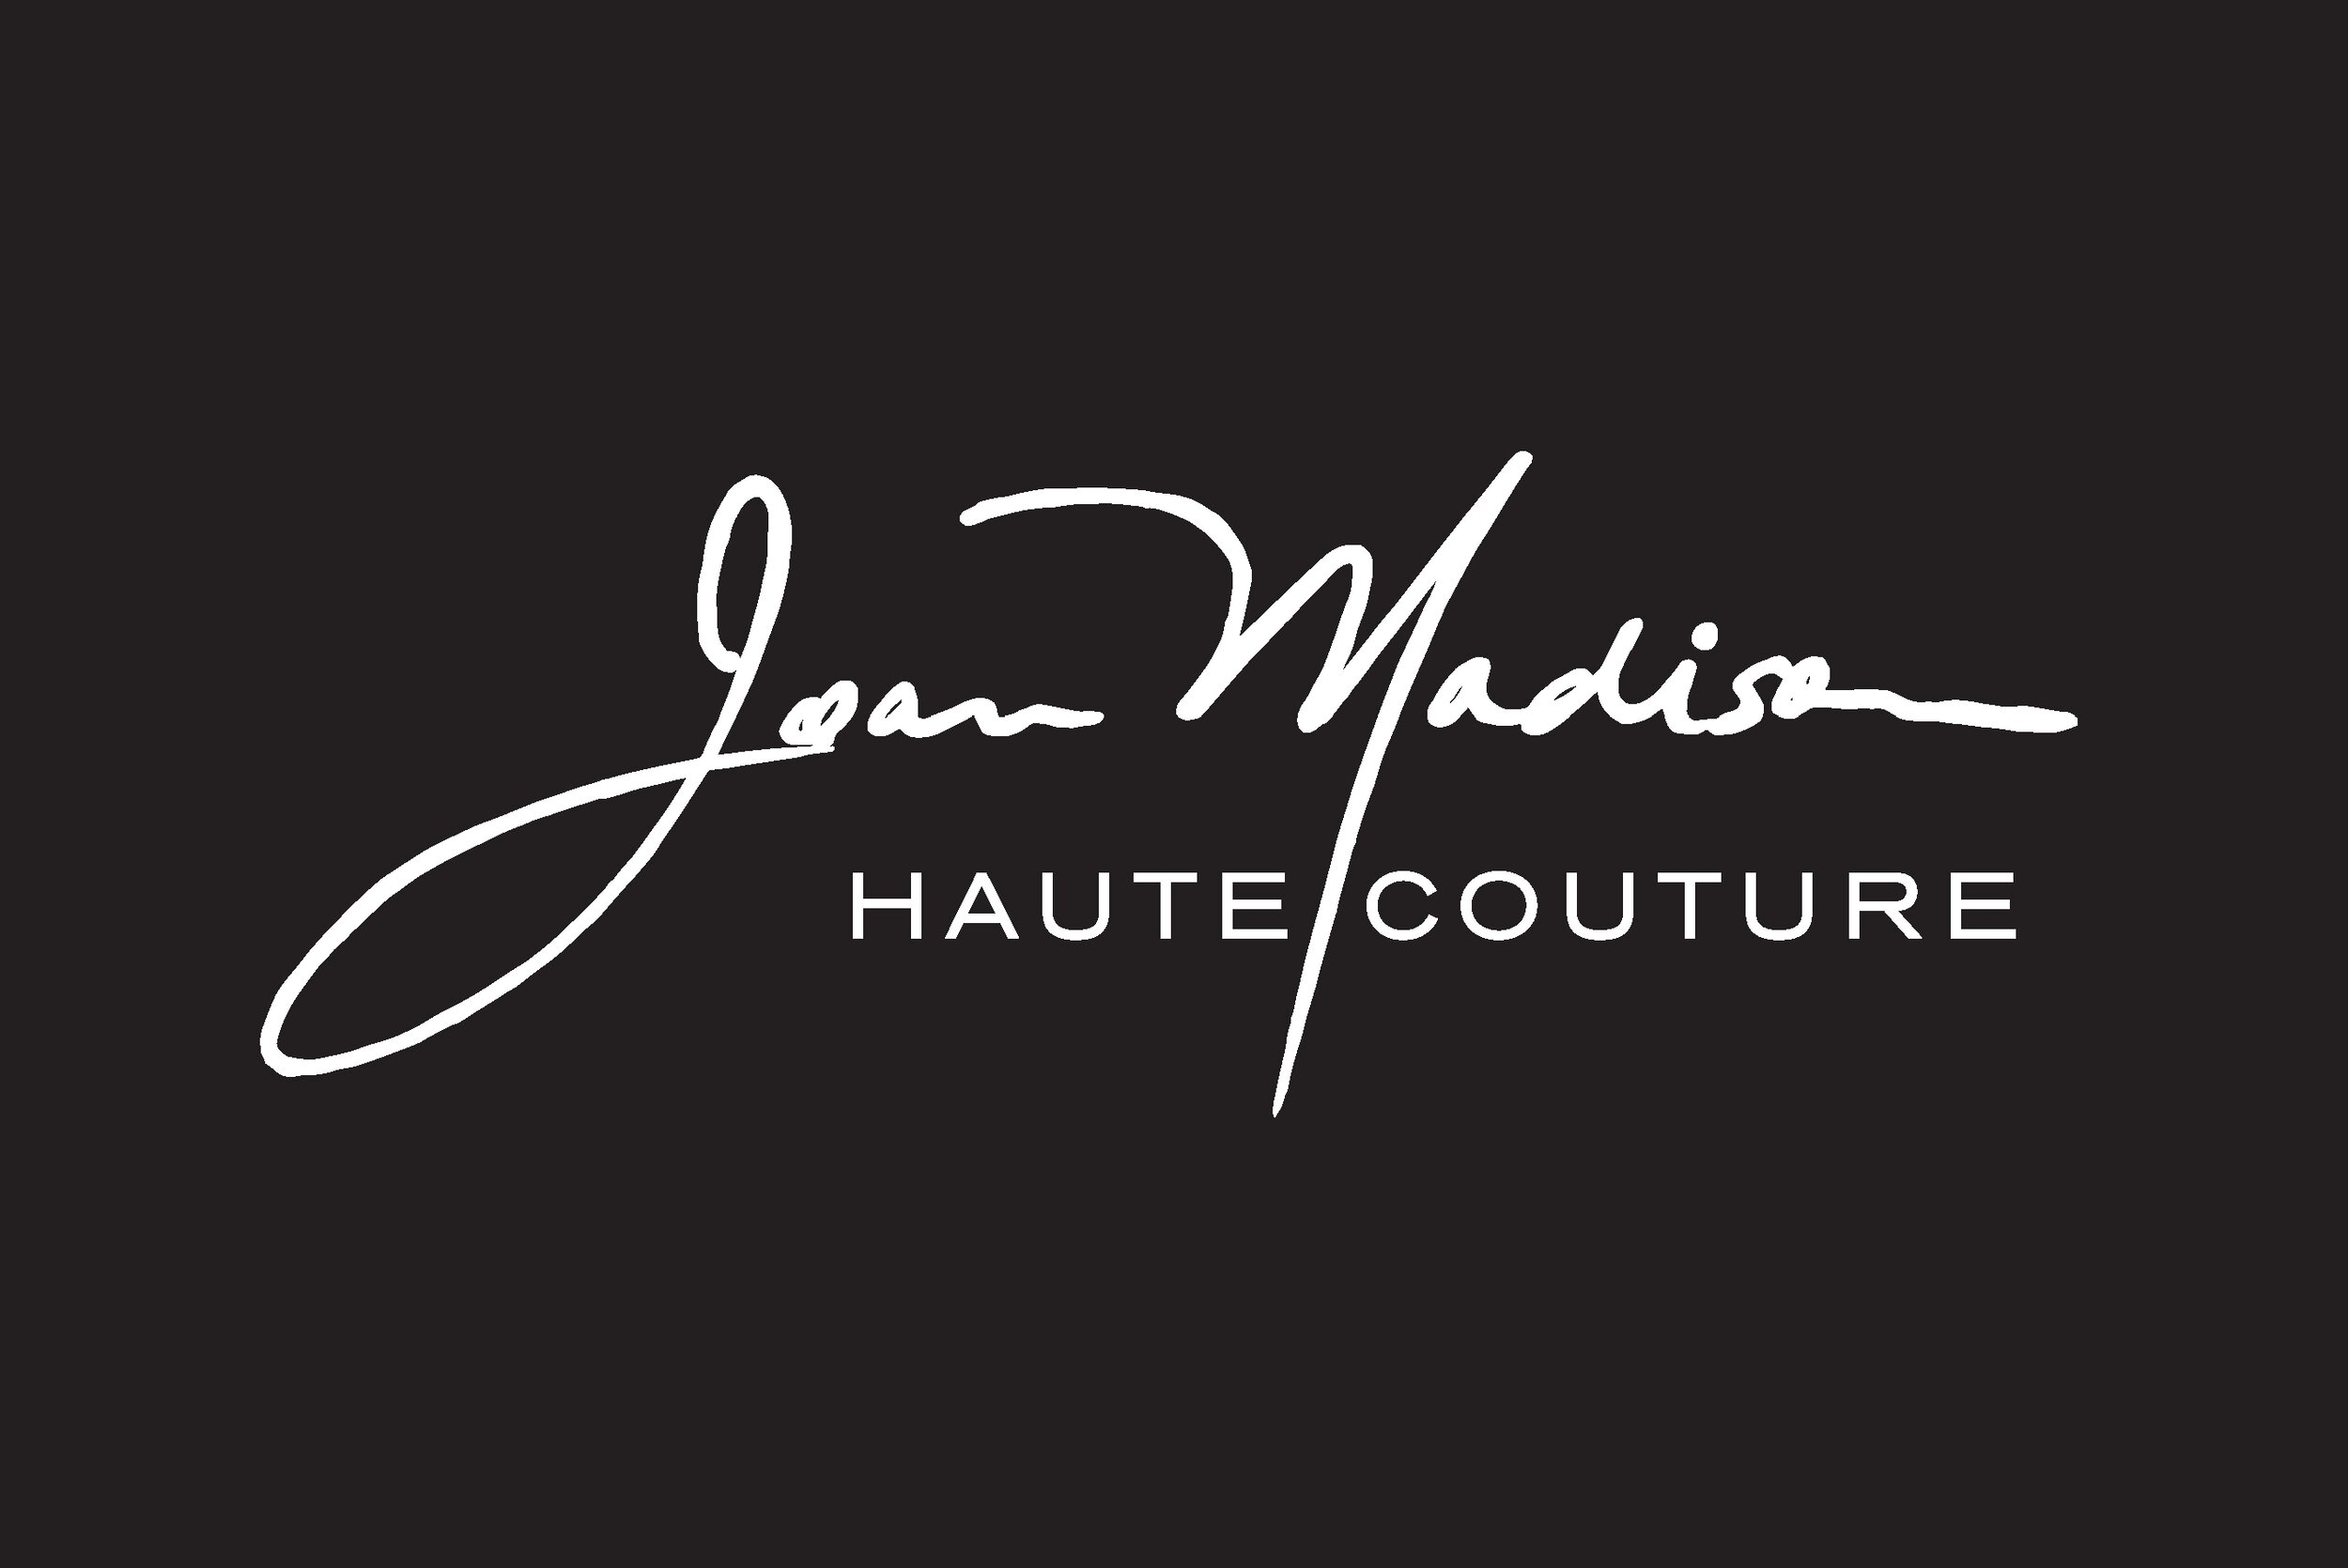 Copy of joan-madison-haute-couture-XL.jpg